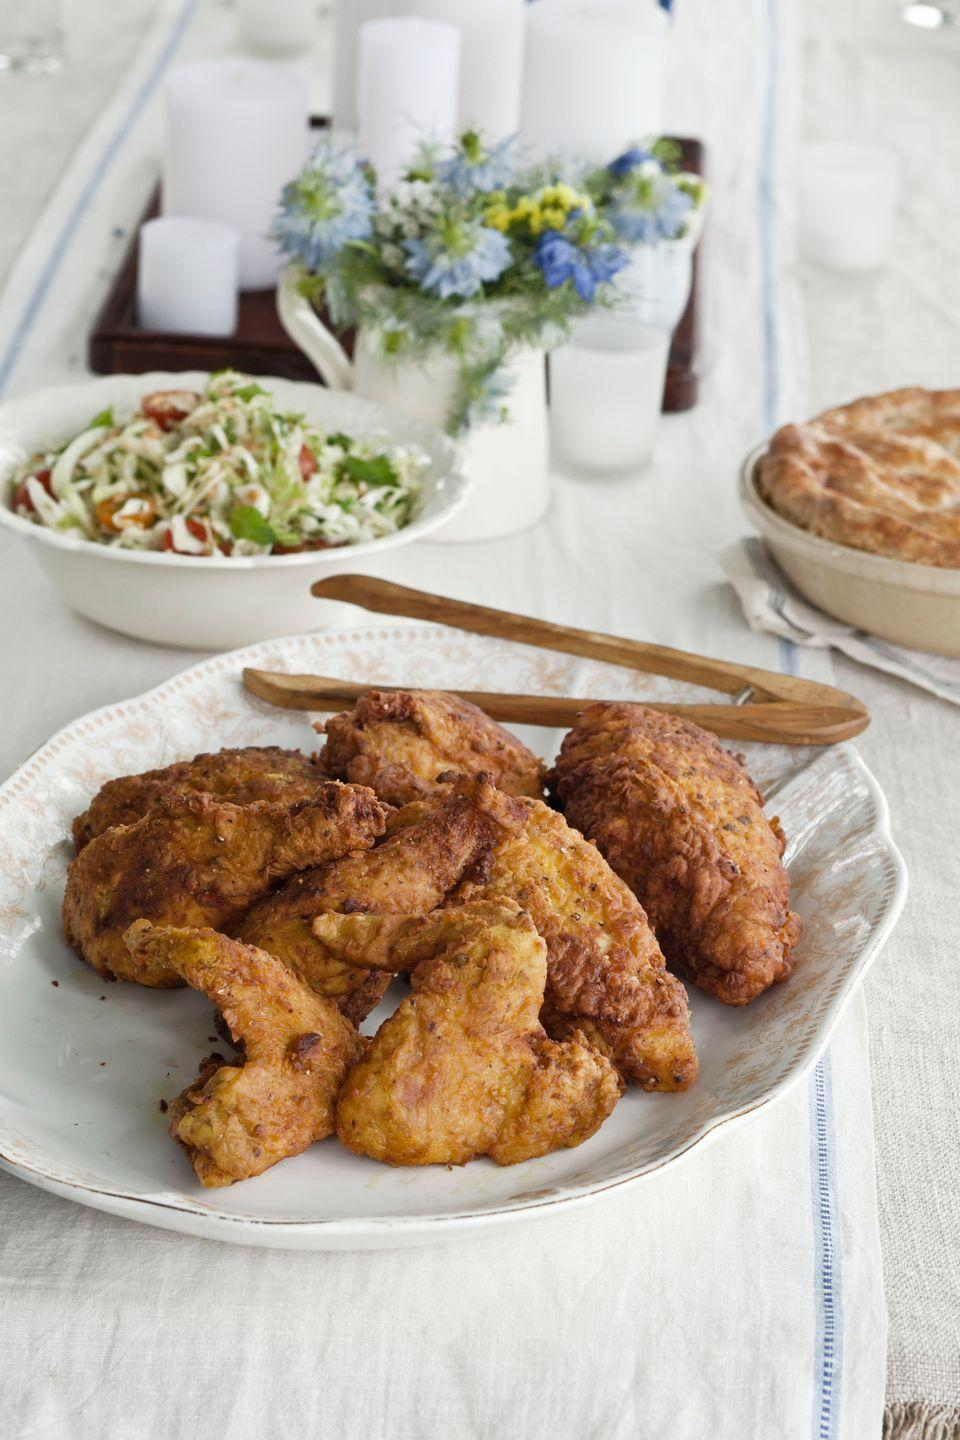 """<p>The fried chicken owes its spice to a buttermilk brine with garam masala, coriander, ginger, and cayenne.</p><p><strong><a href=""""https://www.countryliving.com/food-drinks/recipes/a4166/buttermilk-brined-fried-chicken-masala-recipe-clv0712/"""" rel=""""nofollow noopener"""" target=""""_blank"""" data-ylk=""""slk:Get the recipe"""" class=""""link rapid-noclick-resp"""">Get the recipe</a>.</strong></p>"""